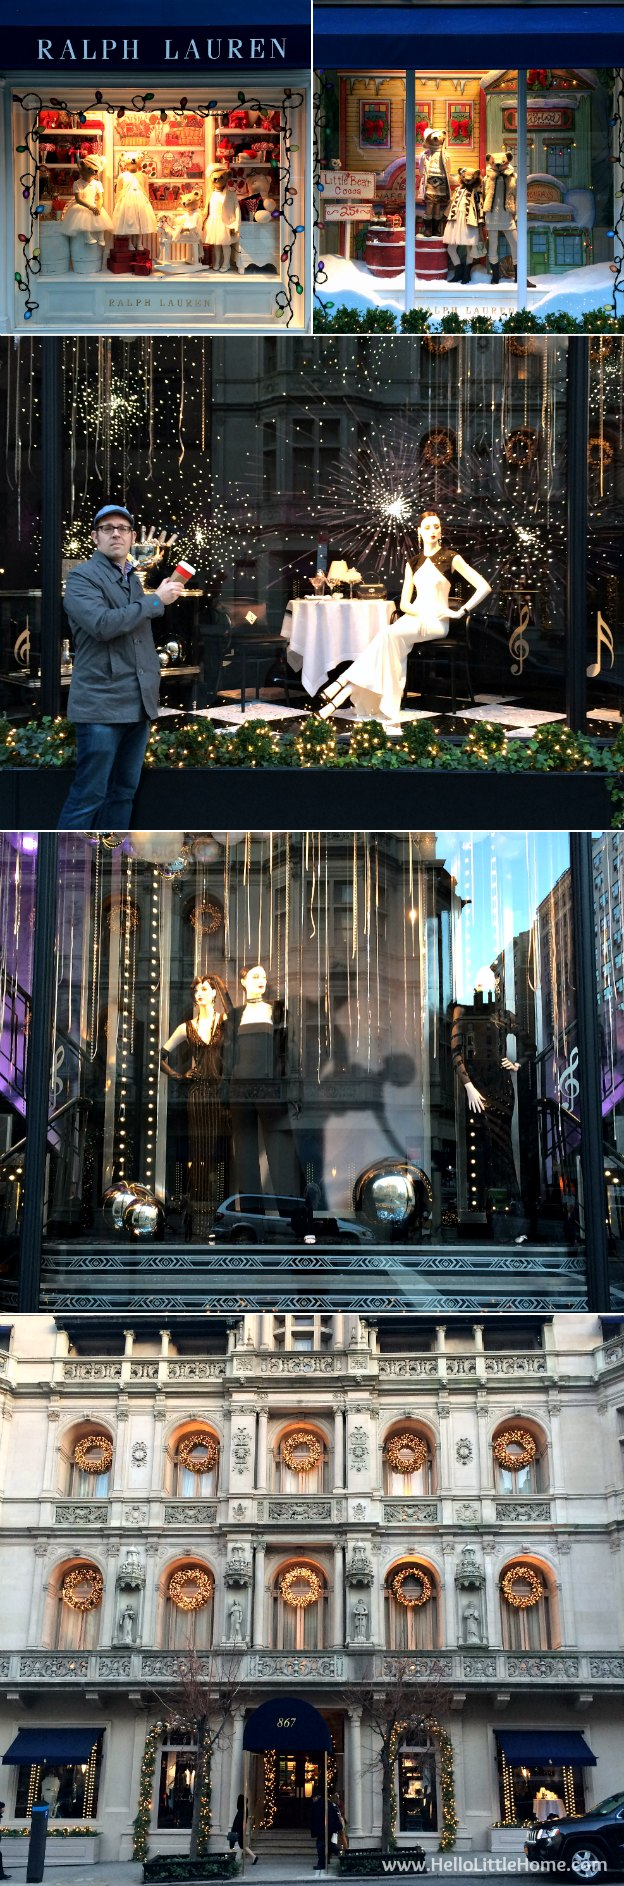 Join me on my NYC Holiday Tour 2015 of Christmas window displays, trees, and lights! Ralph Lauren | Hello Little Home